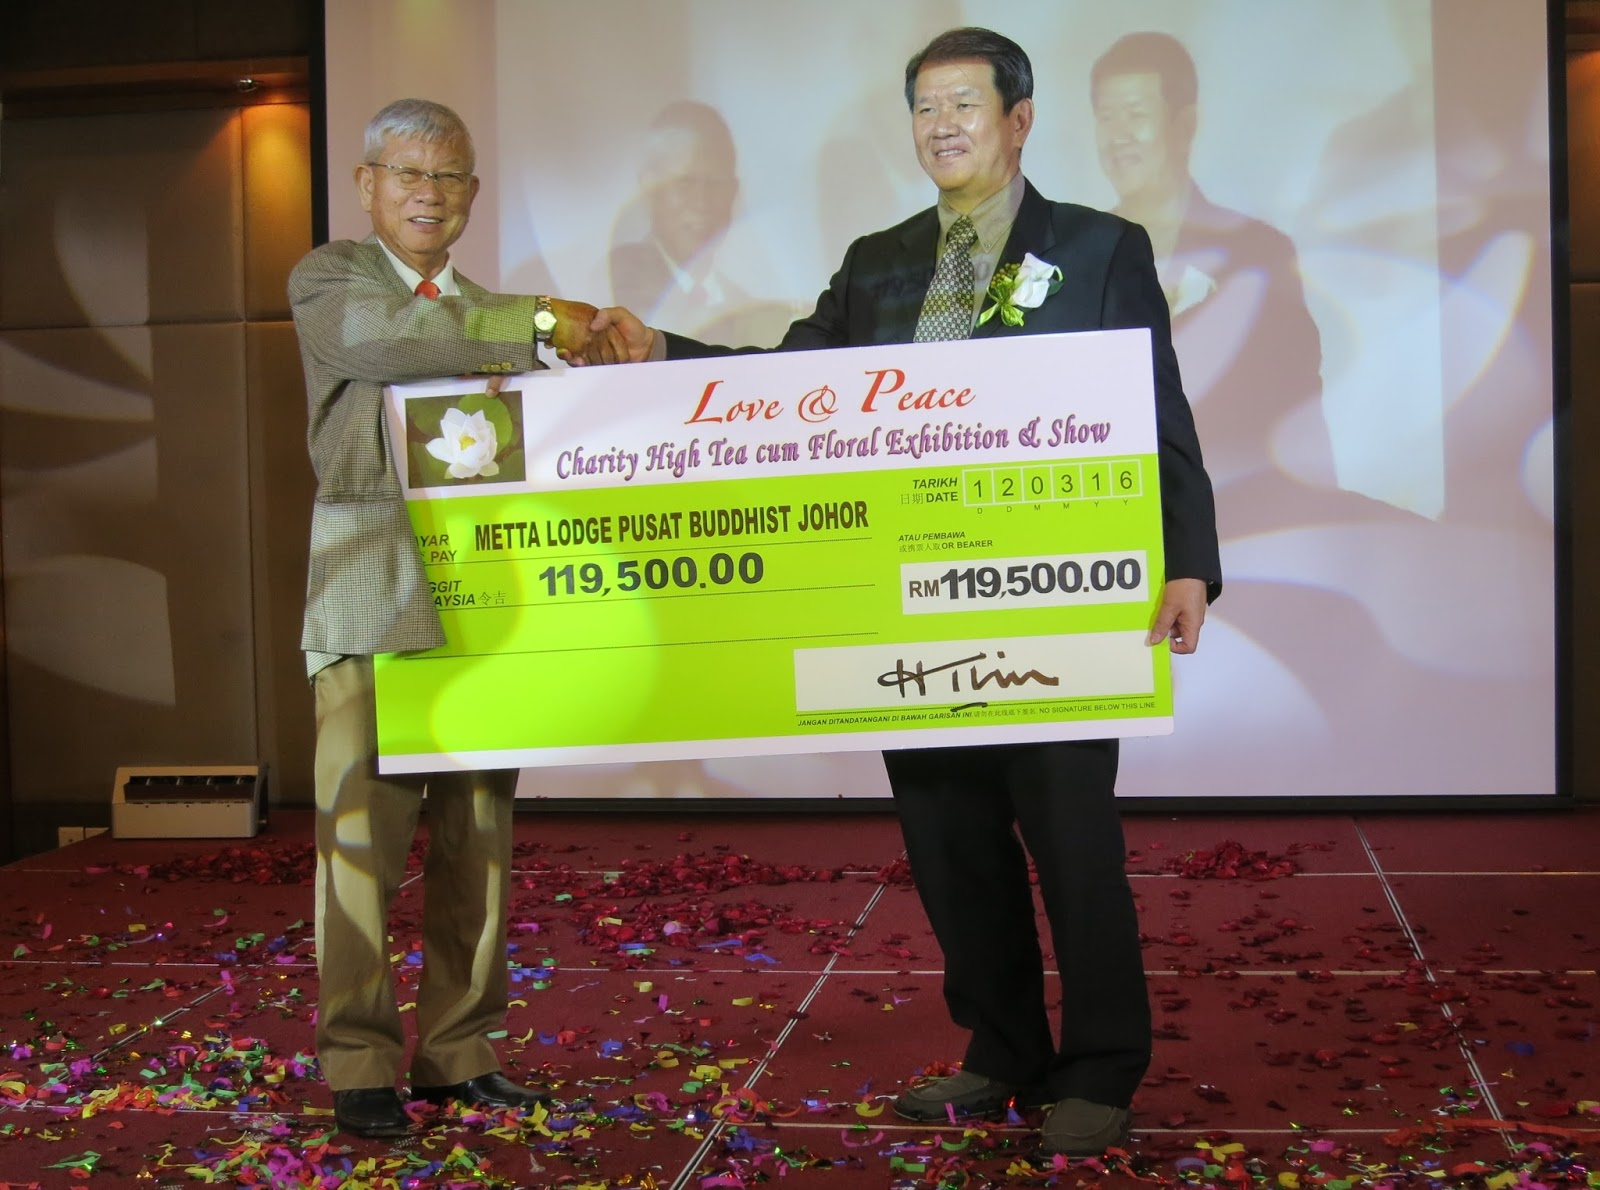 und-raising chairman, Lim Hock Teck [Left] presenting a donation cheque to Metta Lodge Meditation Centre JB chairman, Heng Chai Teet